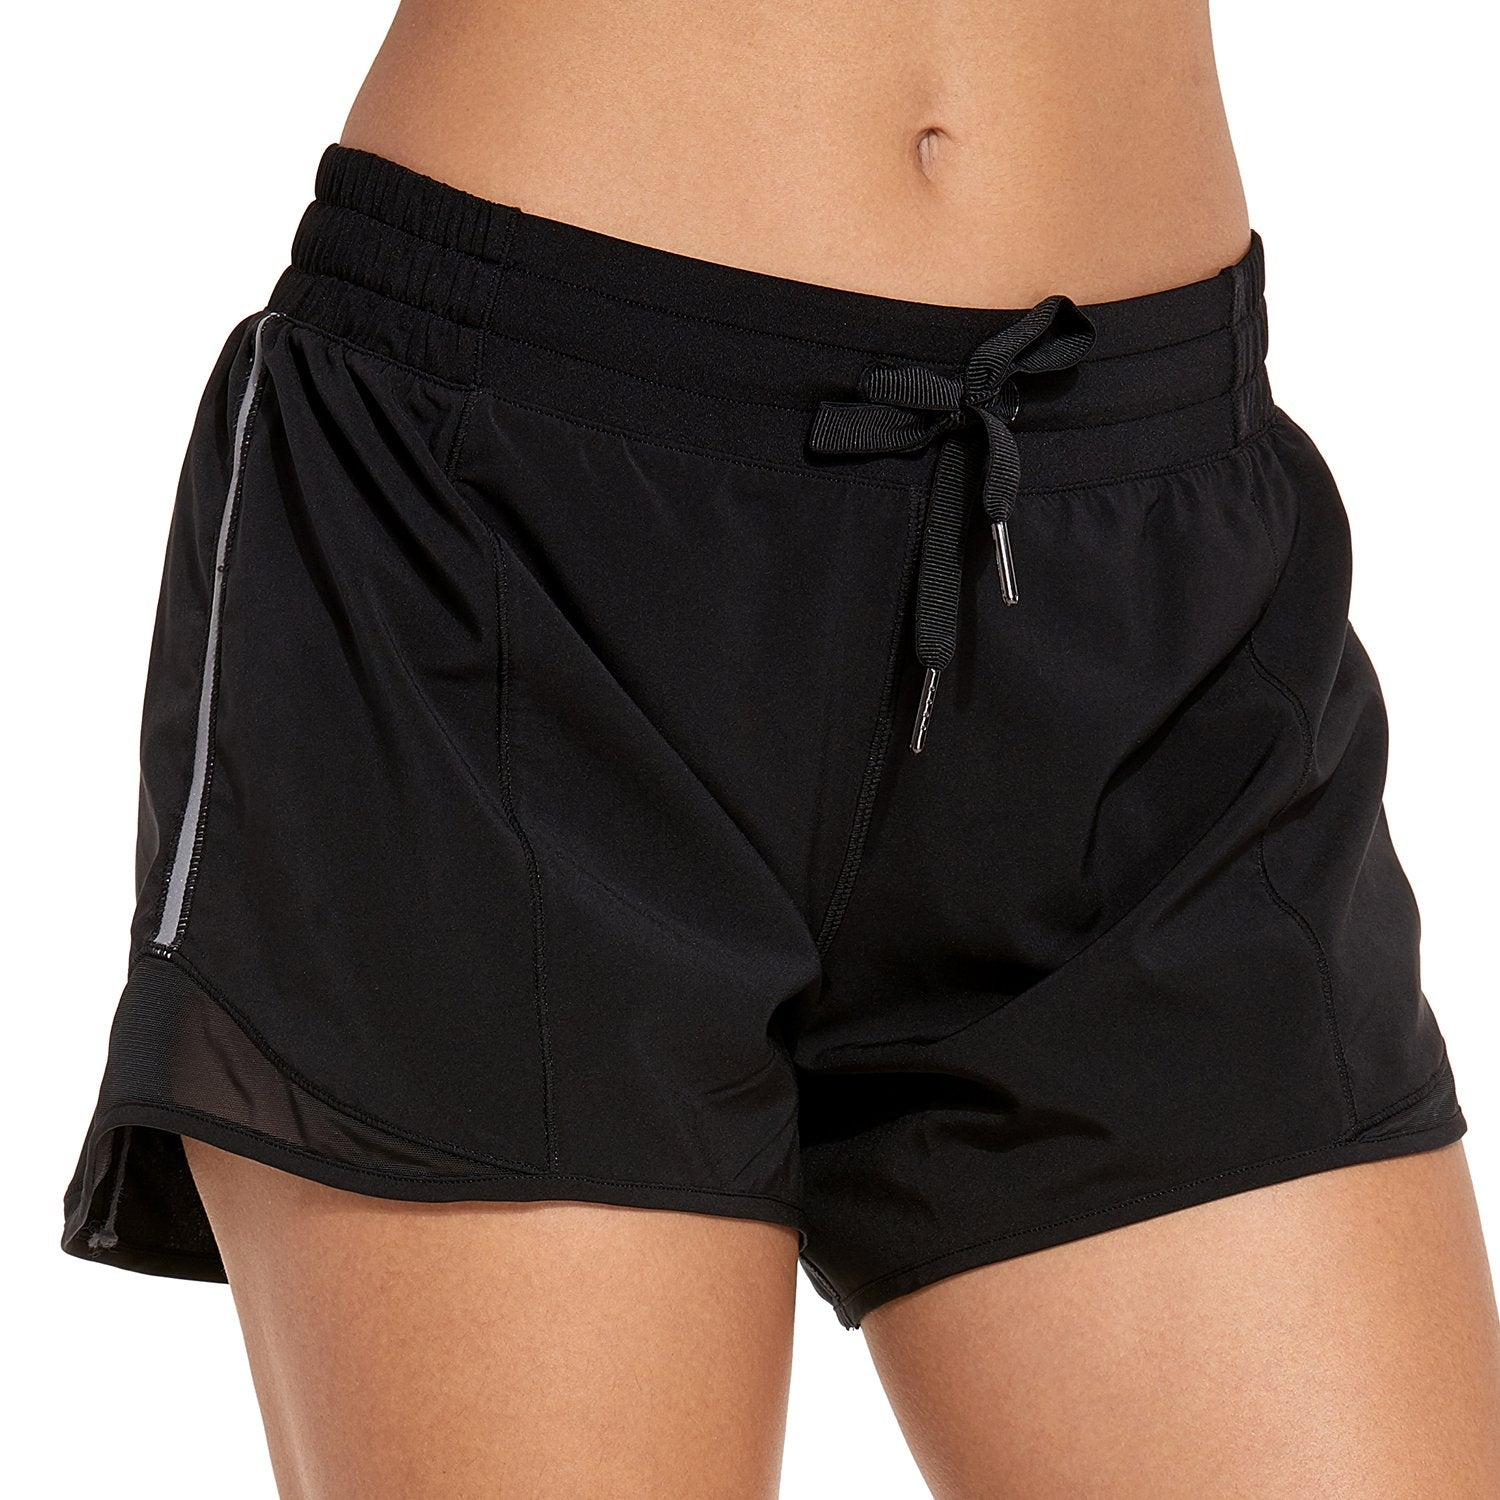 Running Drawstring Shorts 4""